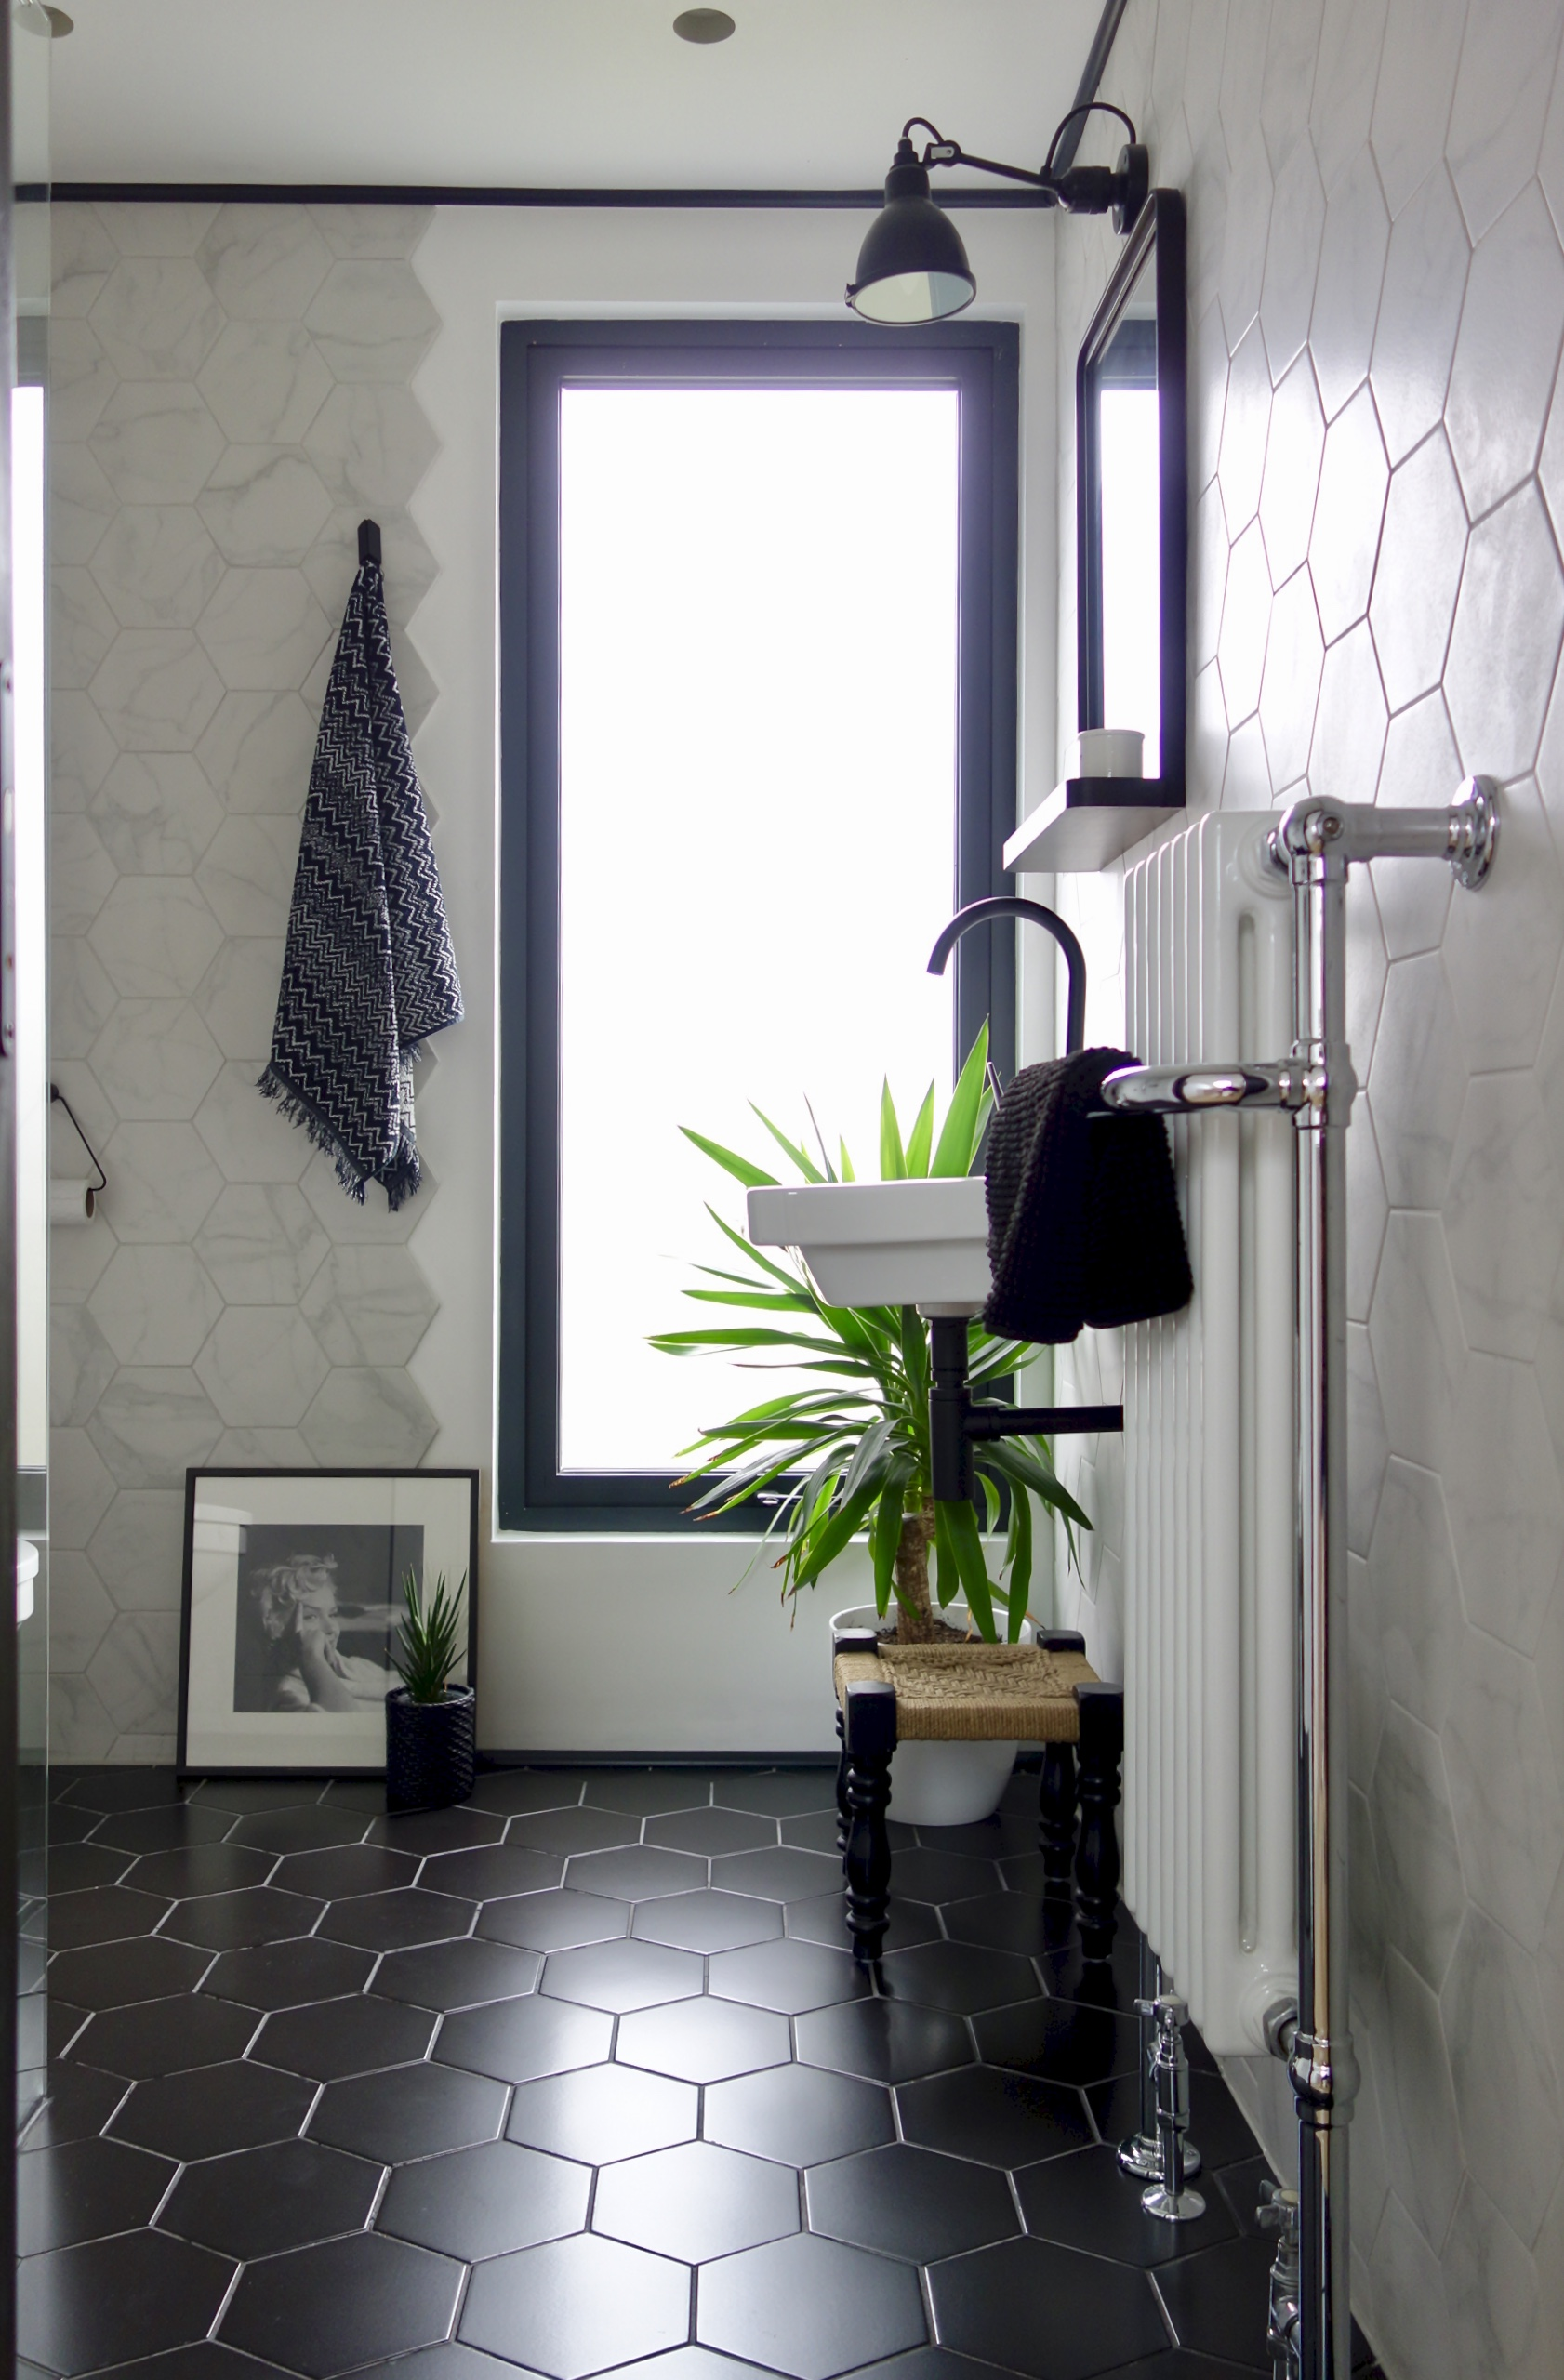 Monochrome Shower Room